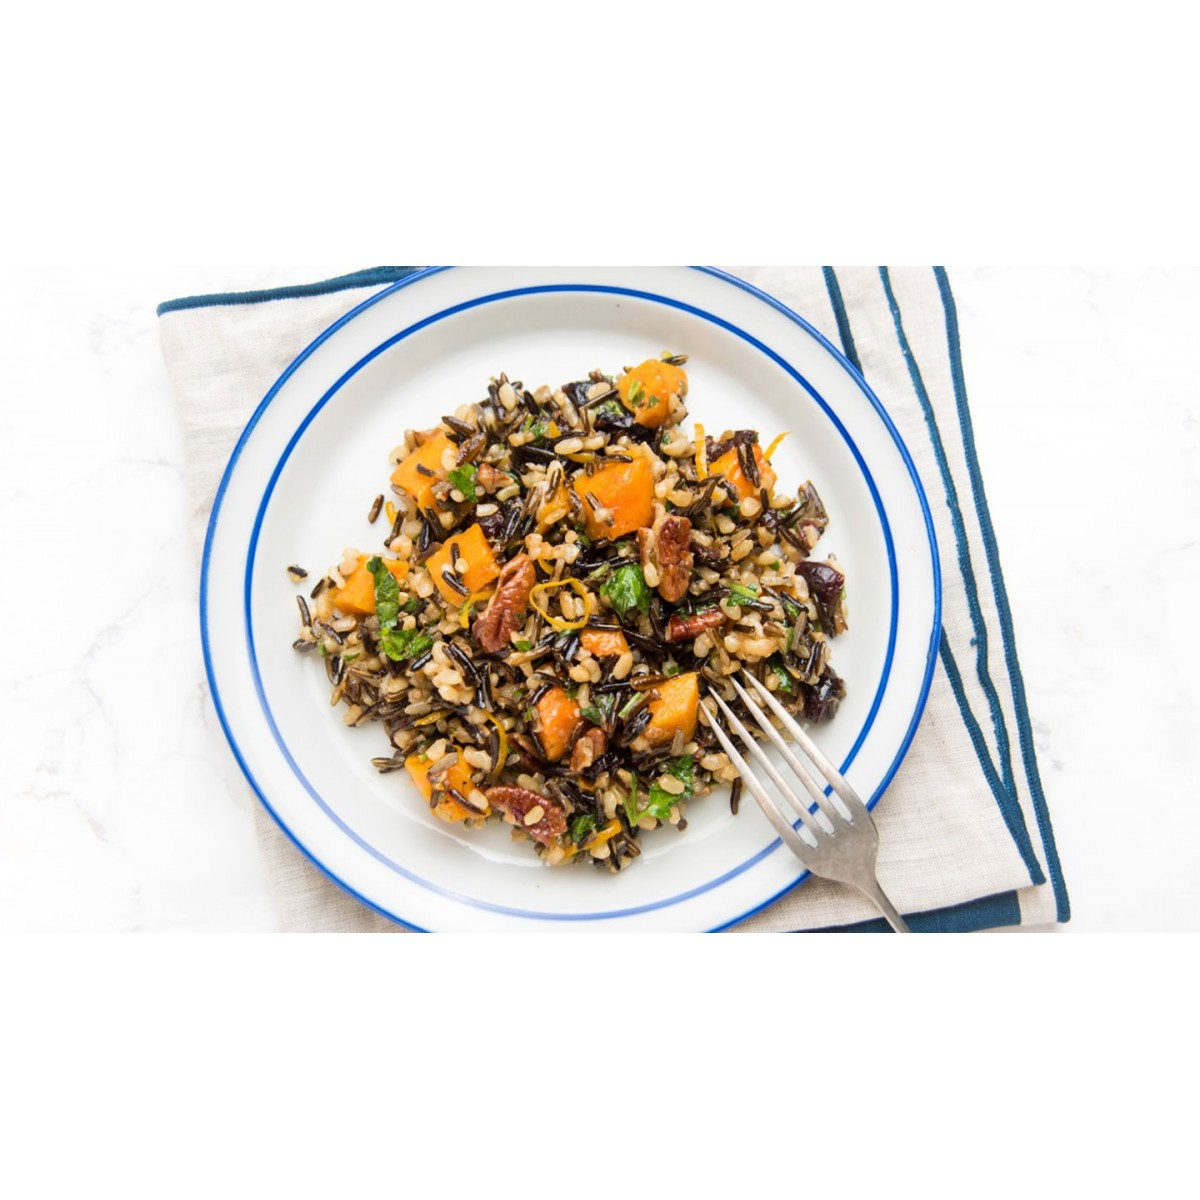 Colorful contour with Sprouts of Farro (Corn)